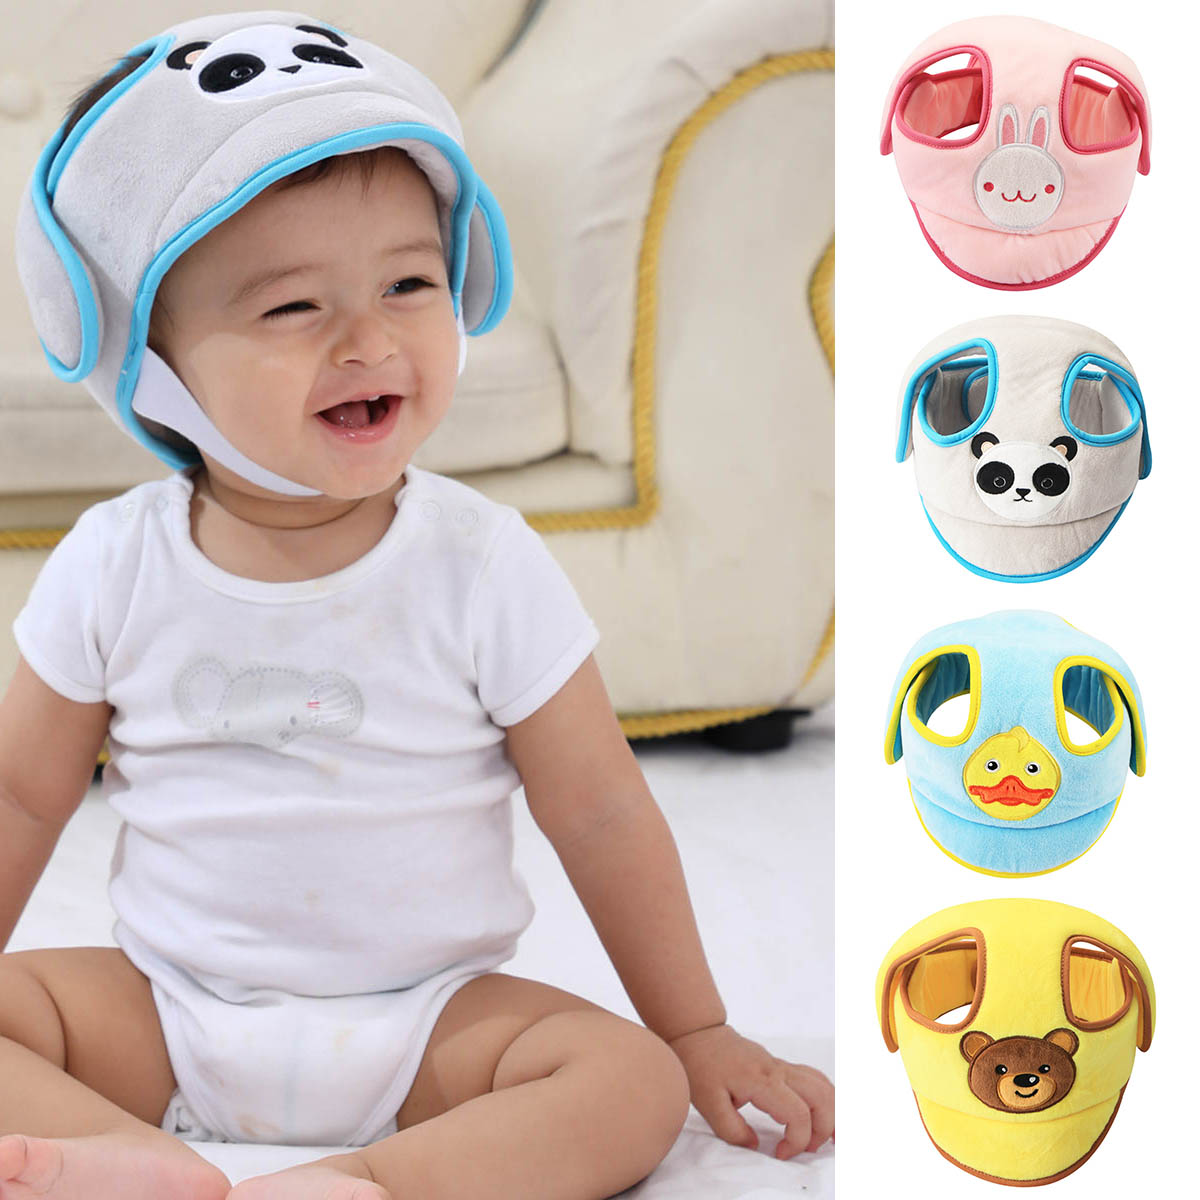 Anti-collision Safety Infant Toddler Protection Soft Hat Baby Protective Helmet Anti-falling Head Protective Cap for Walking